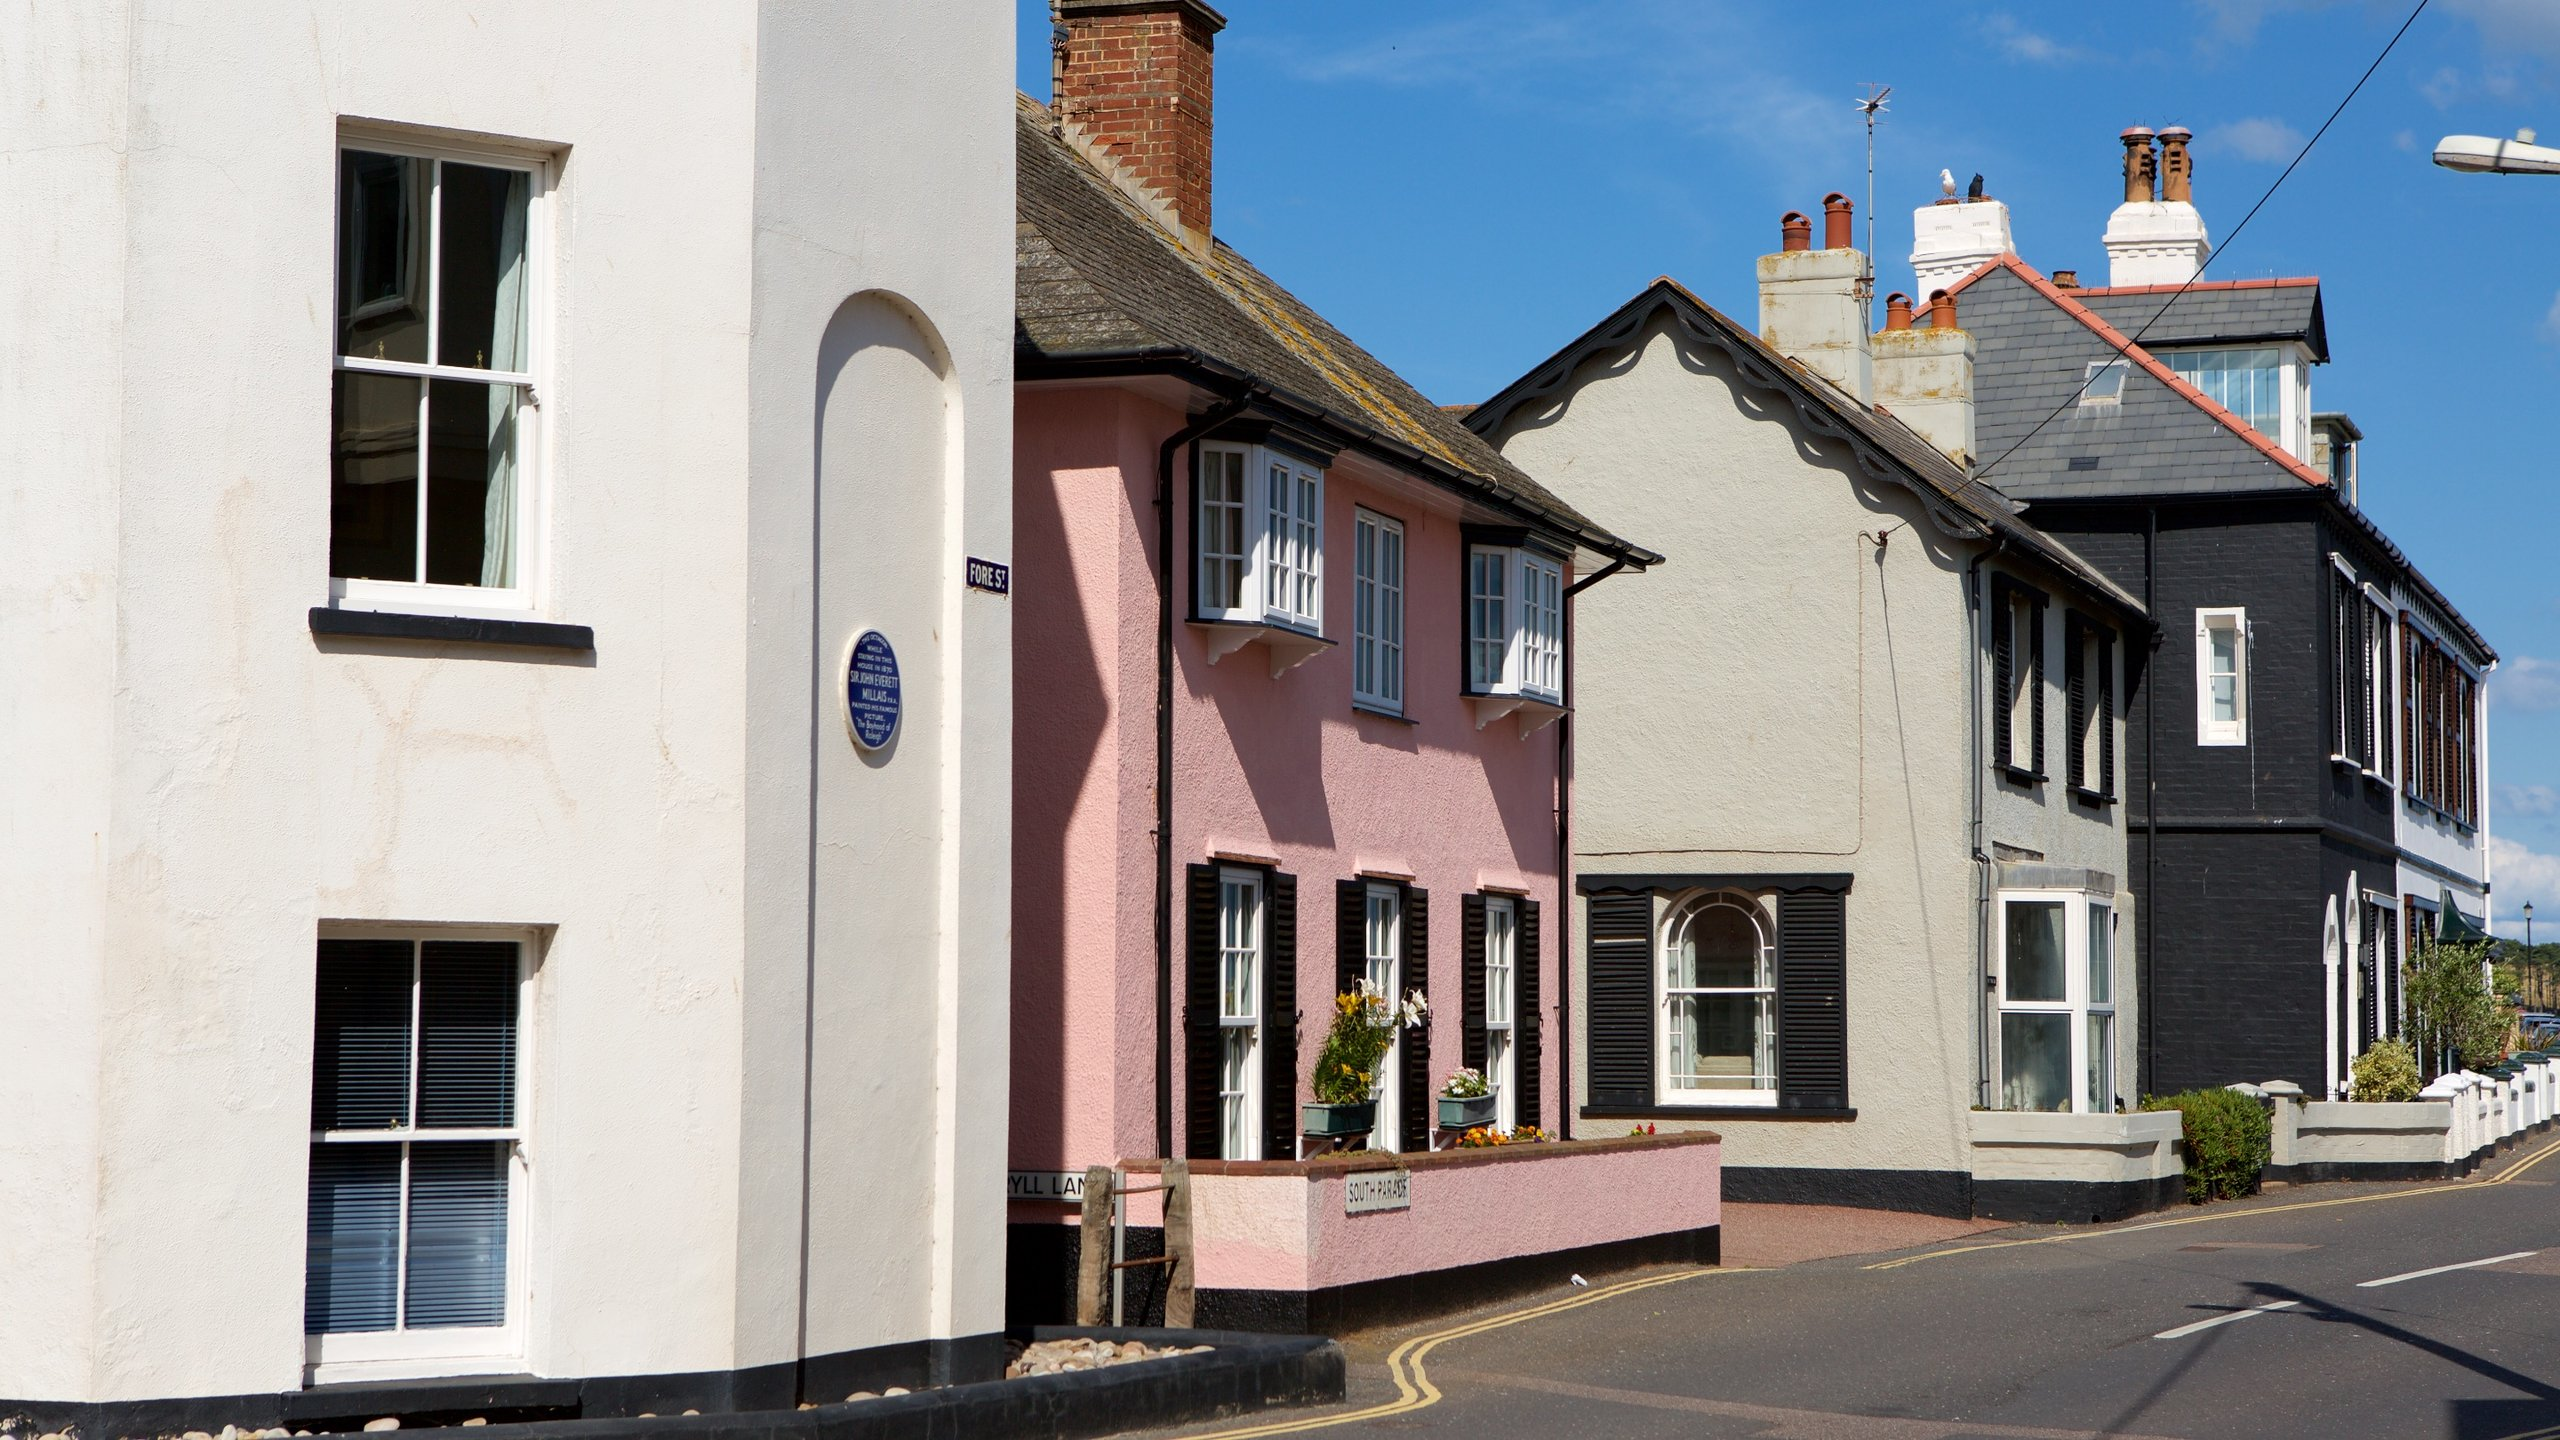 Bed And Breakfast Budleigh Salterton The 10 Best Hotels In Budleigh Salterton England 54 For 2019